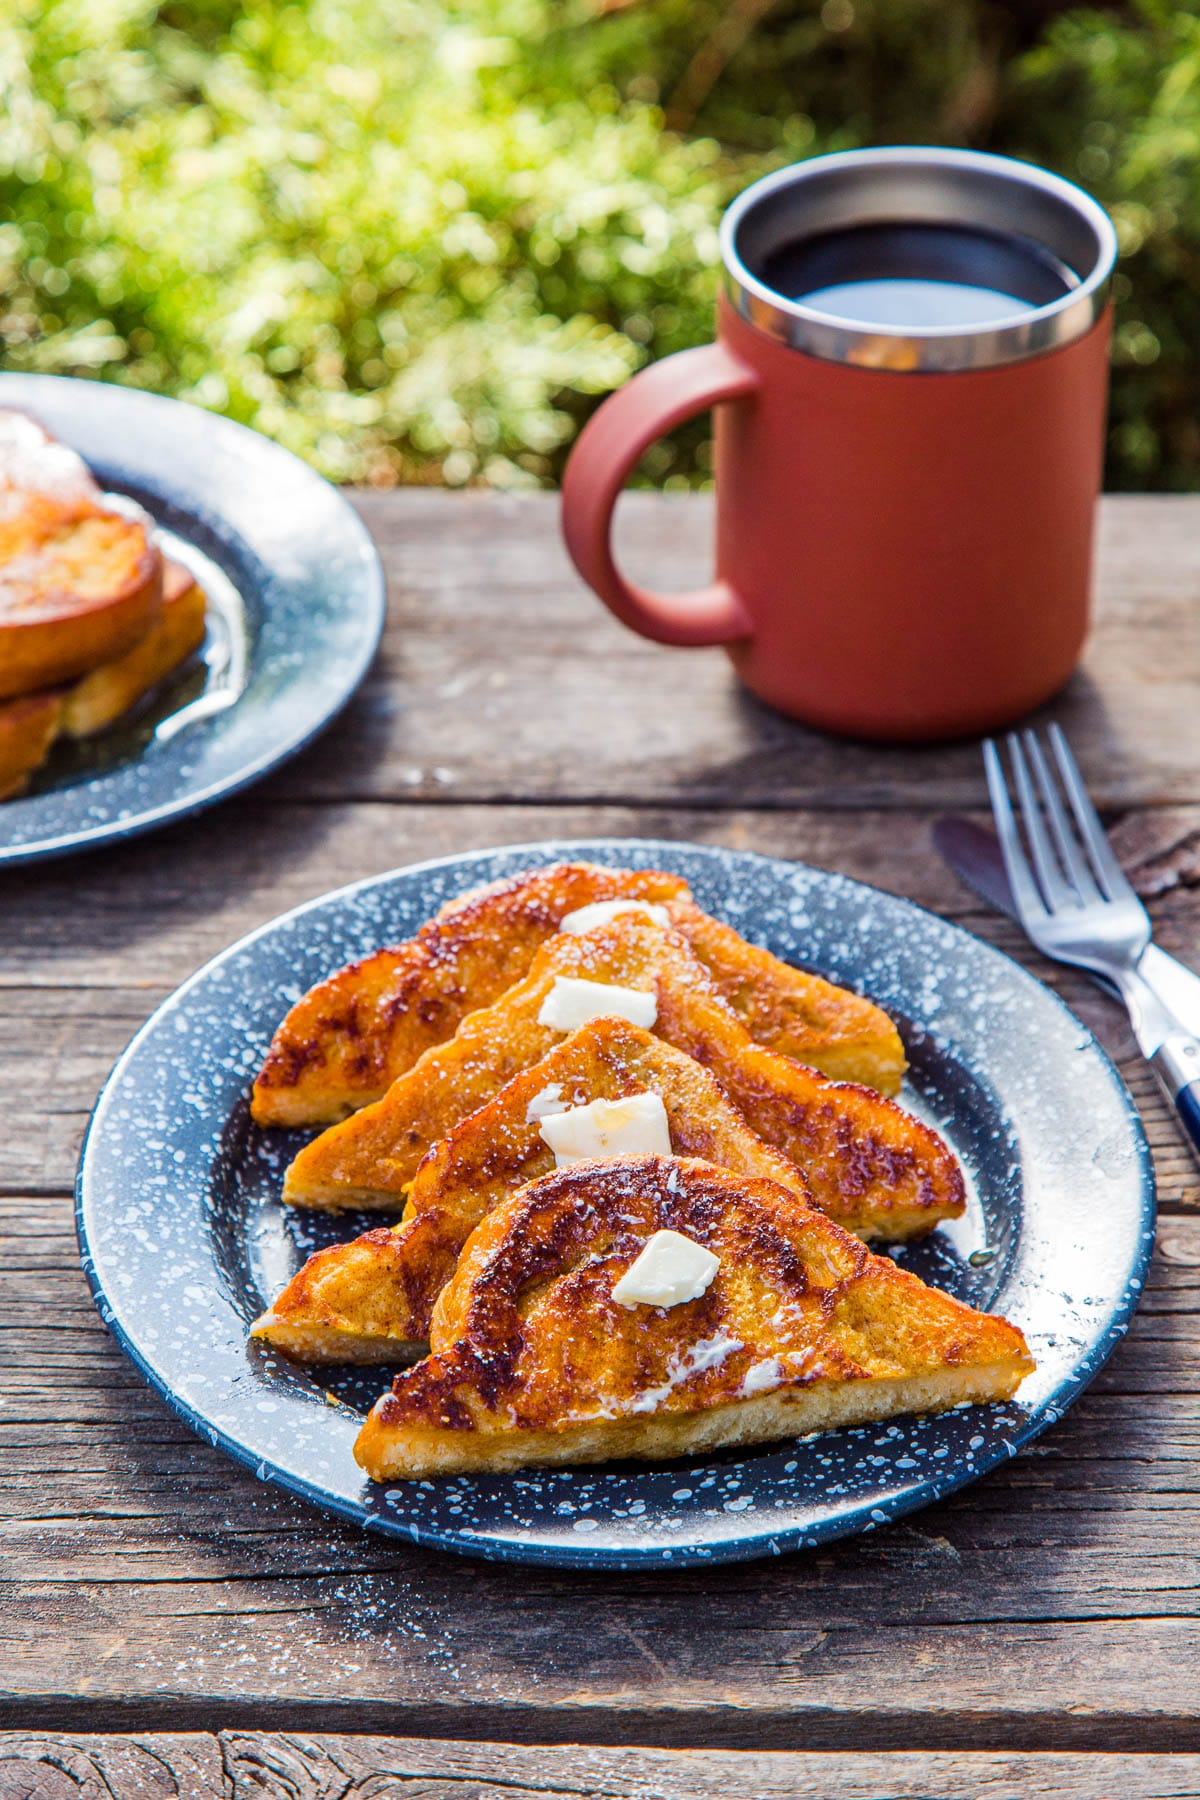 Four slices of pumpkin French toast on a blue plate